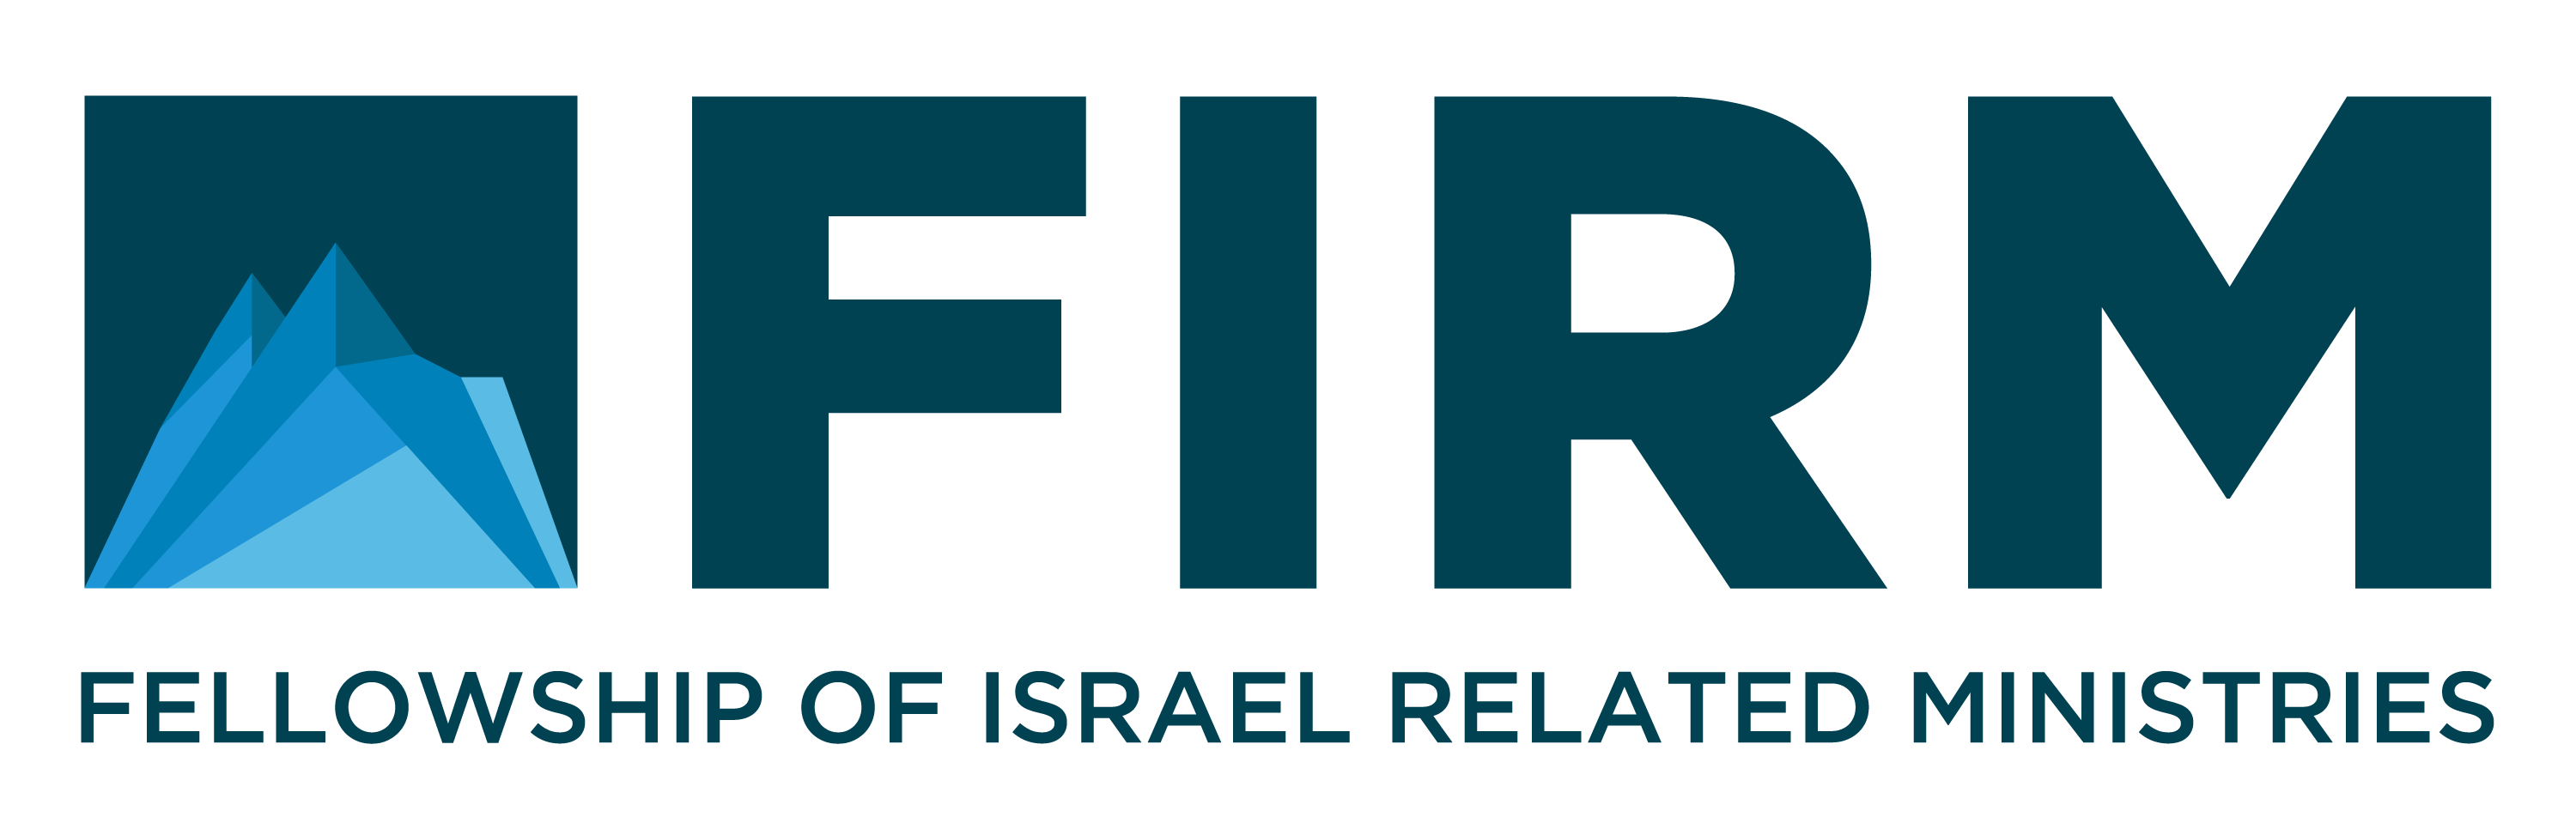 Fellowship of Israel Related Ministries